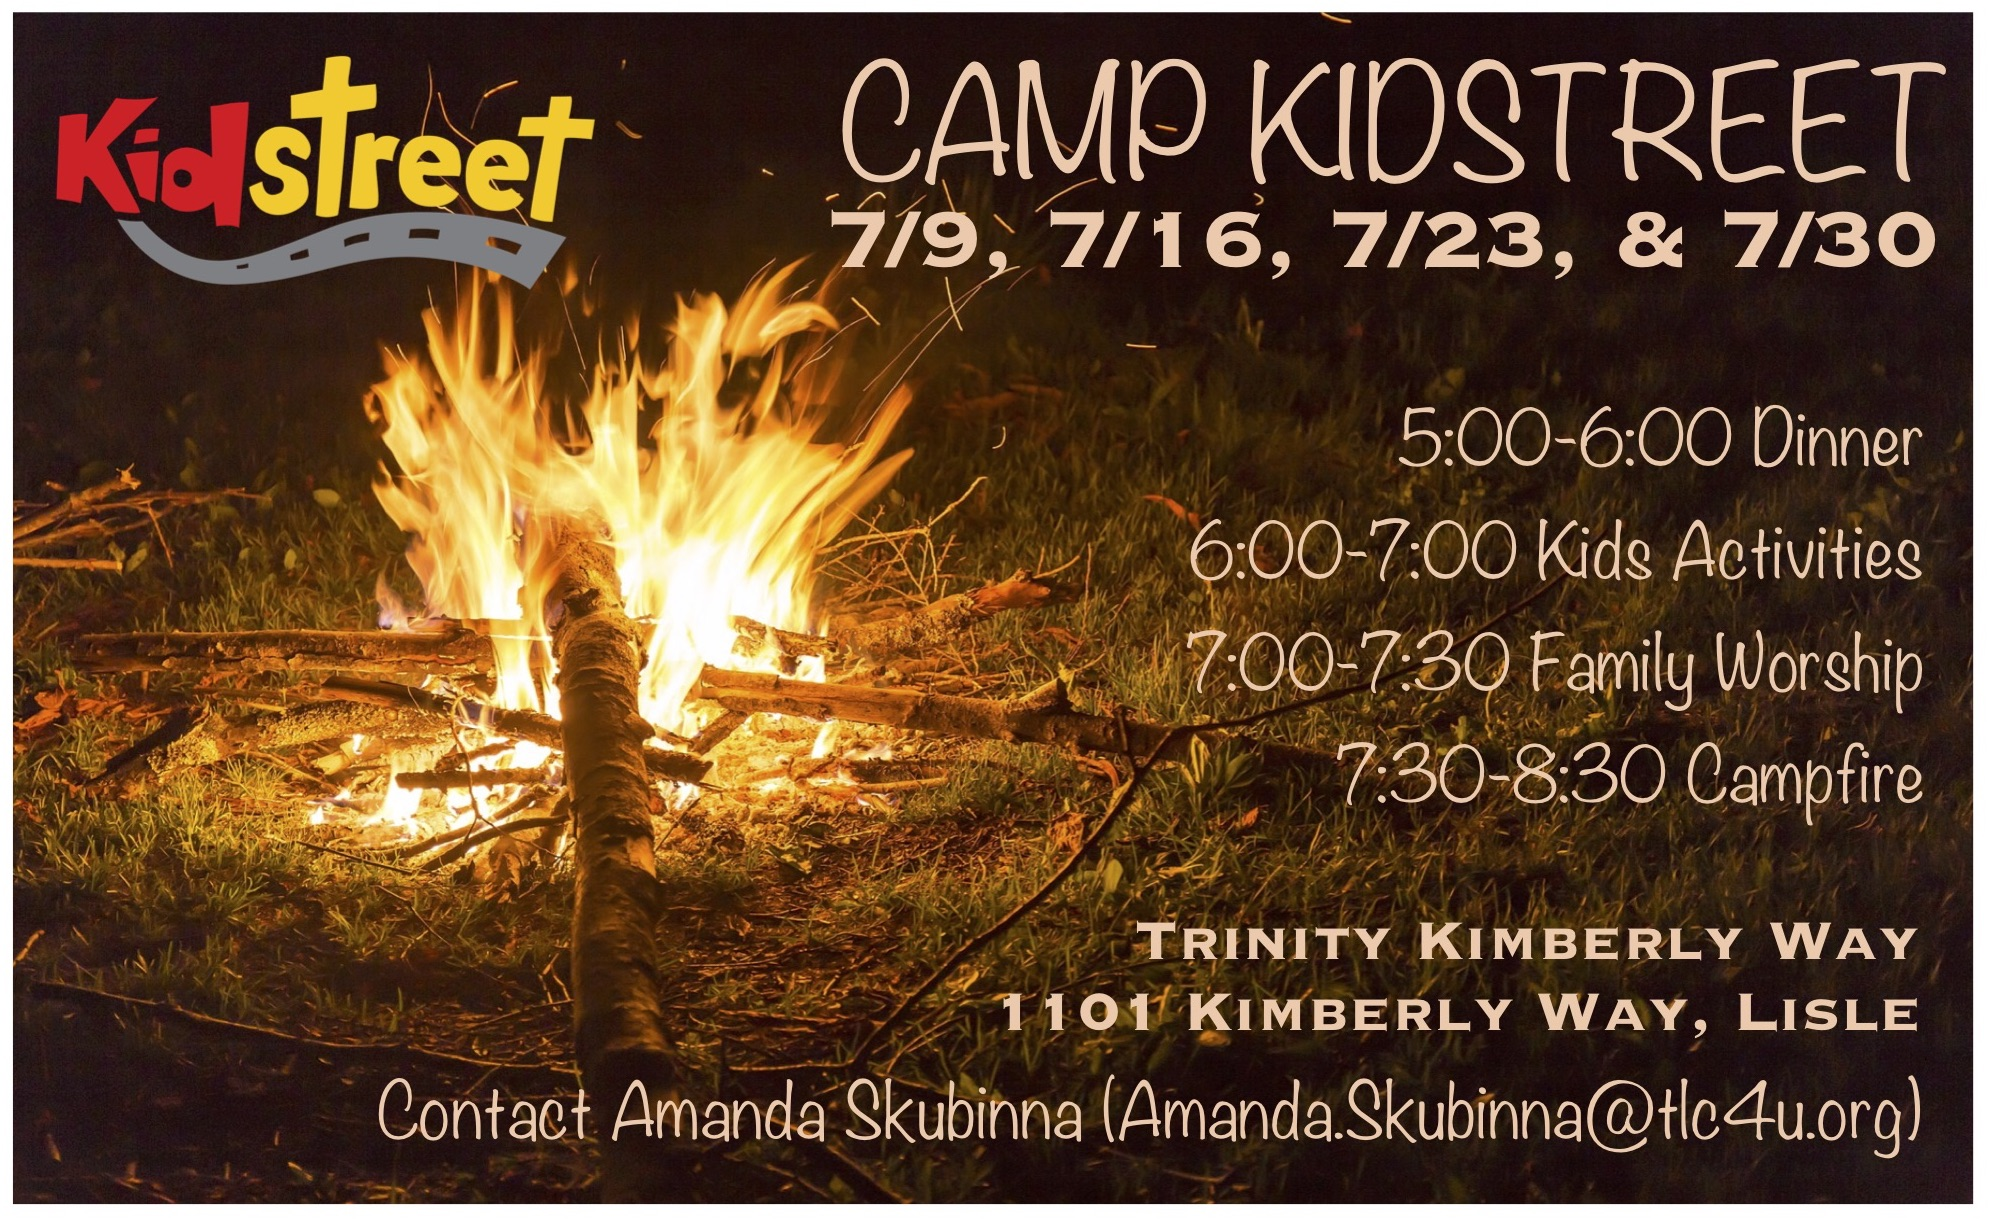 Camp kidstreet 2018 invite card